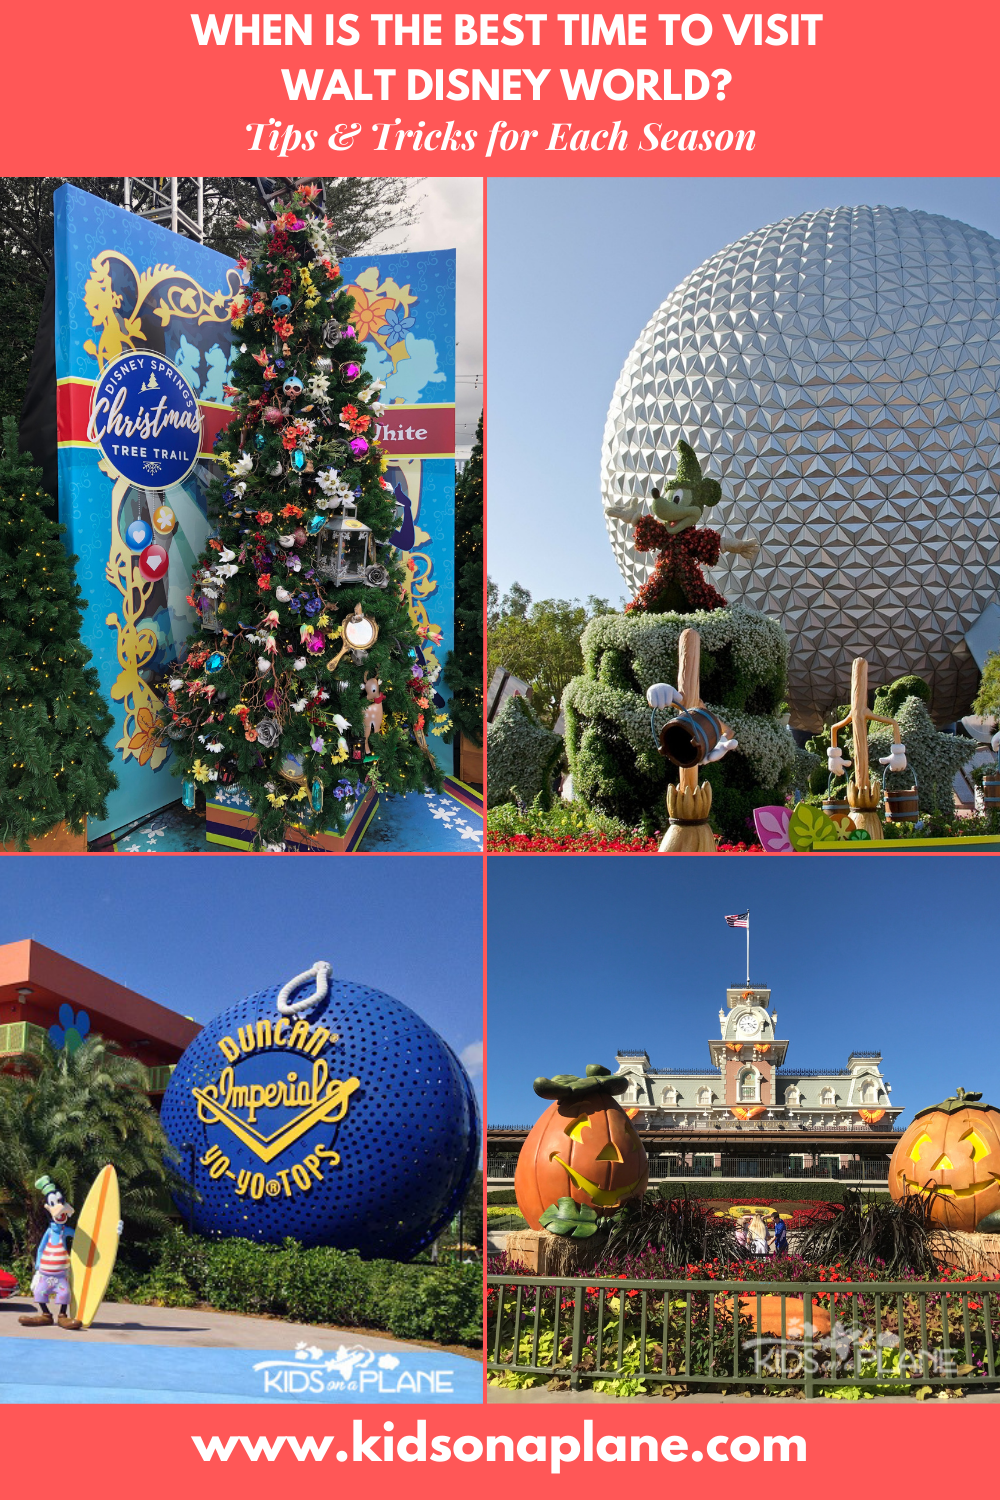 What is the best time to visit Walt Disney World - Tips for all seasons